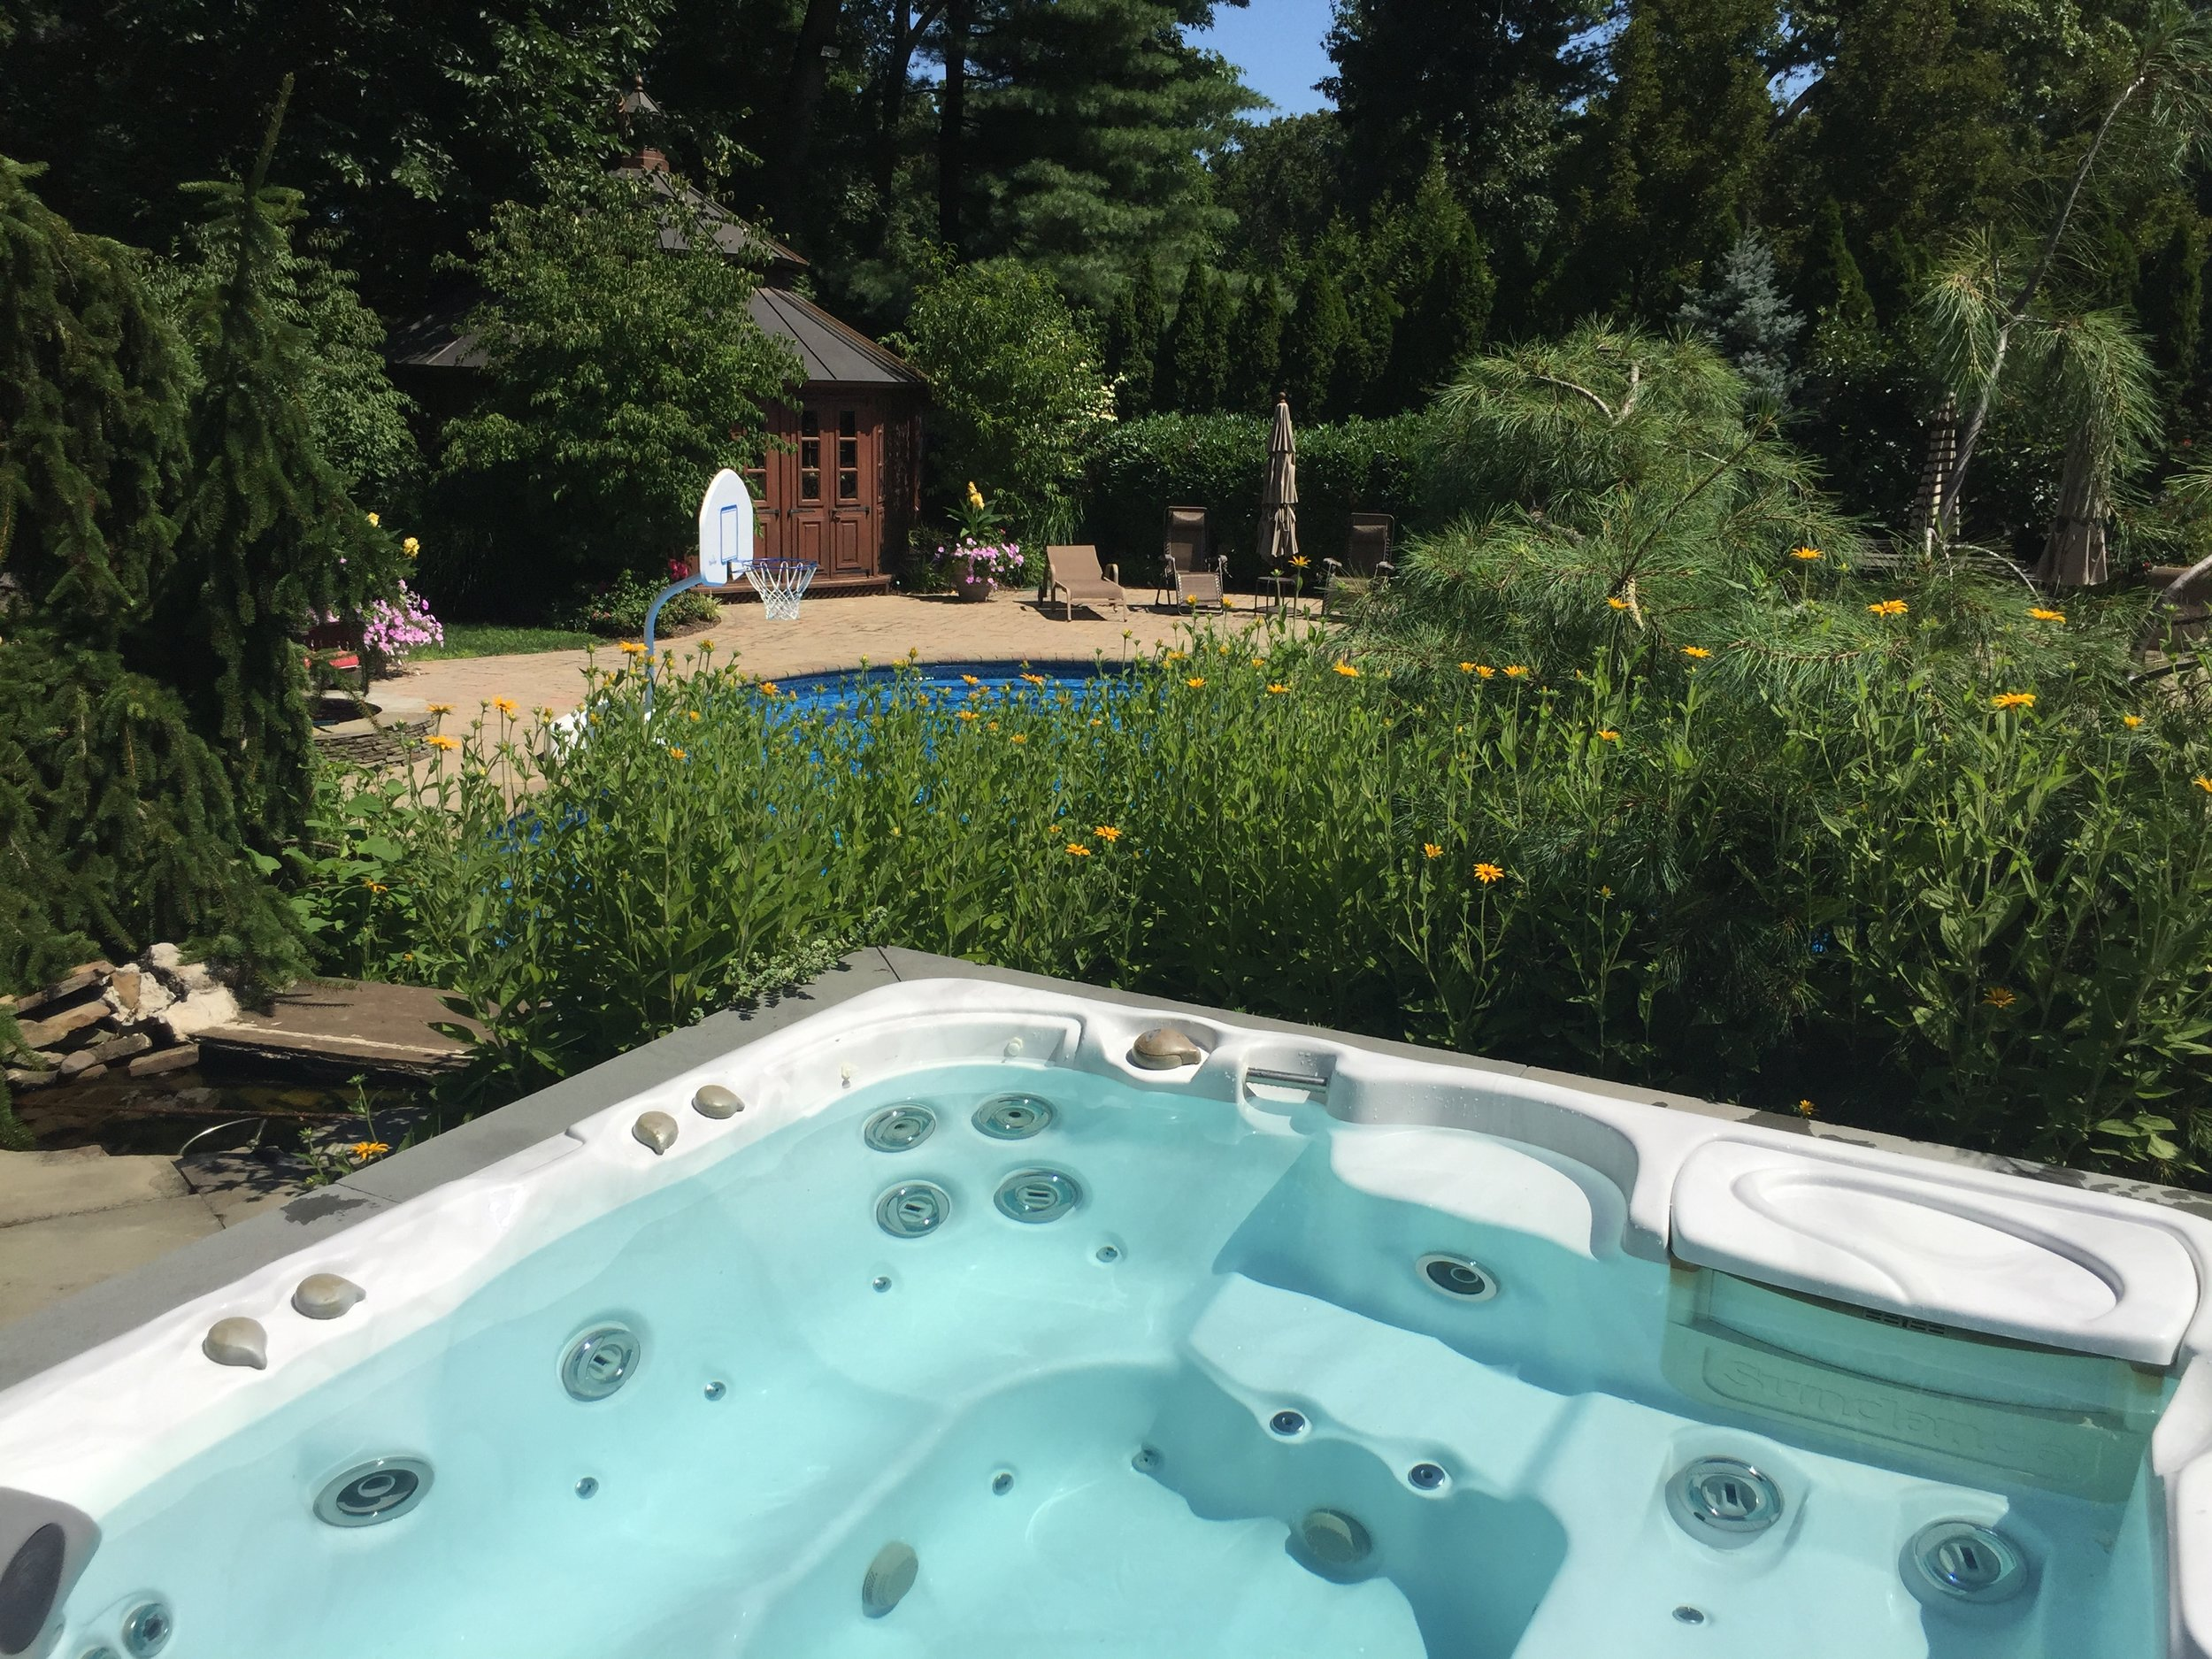 Fiberglass pools Deer Park NY